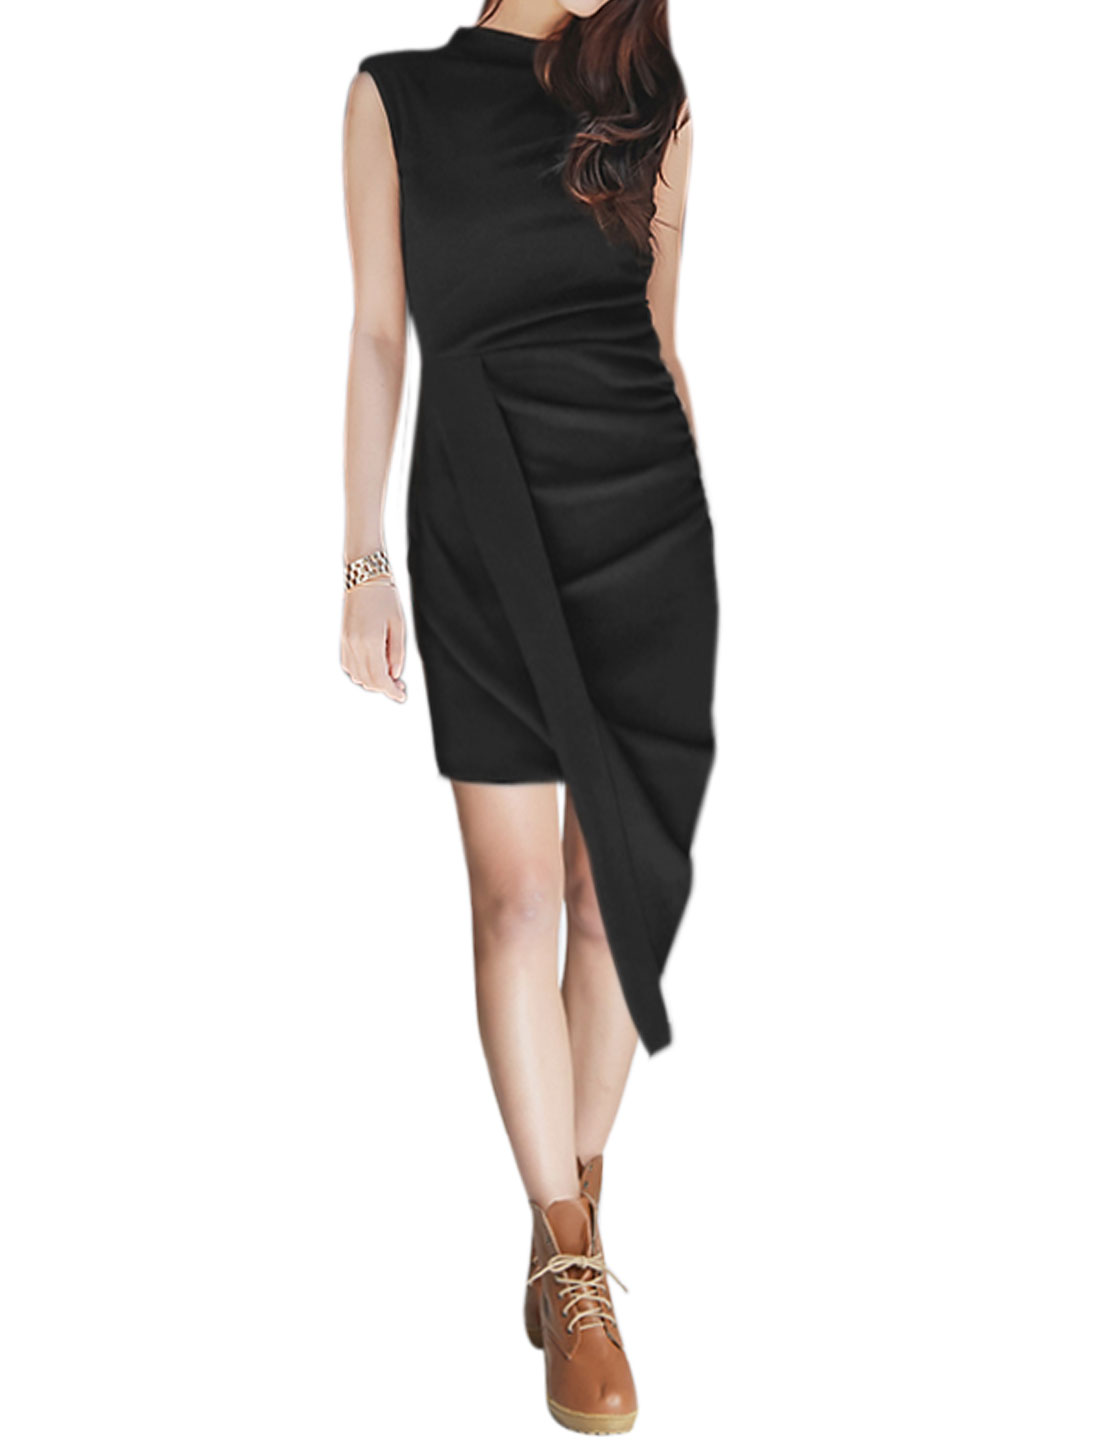 Women Mock Neck Overlay Front High Low Sheath Dress Black XS